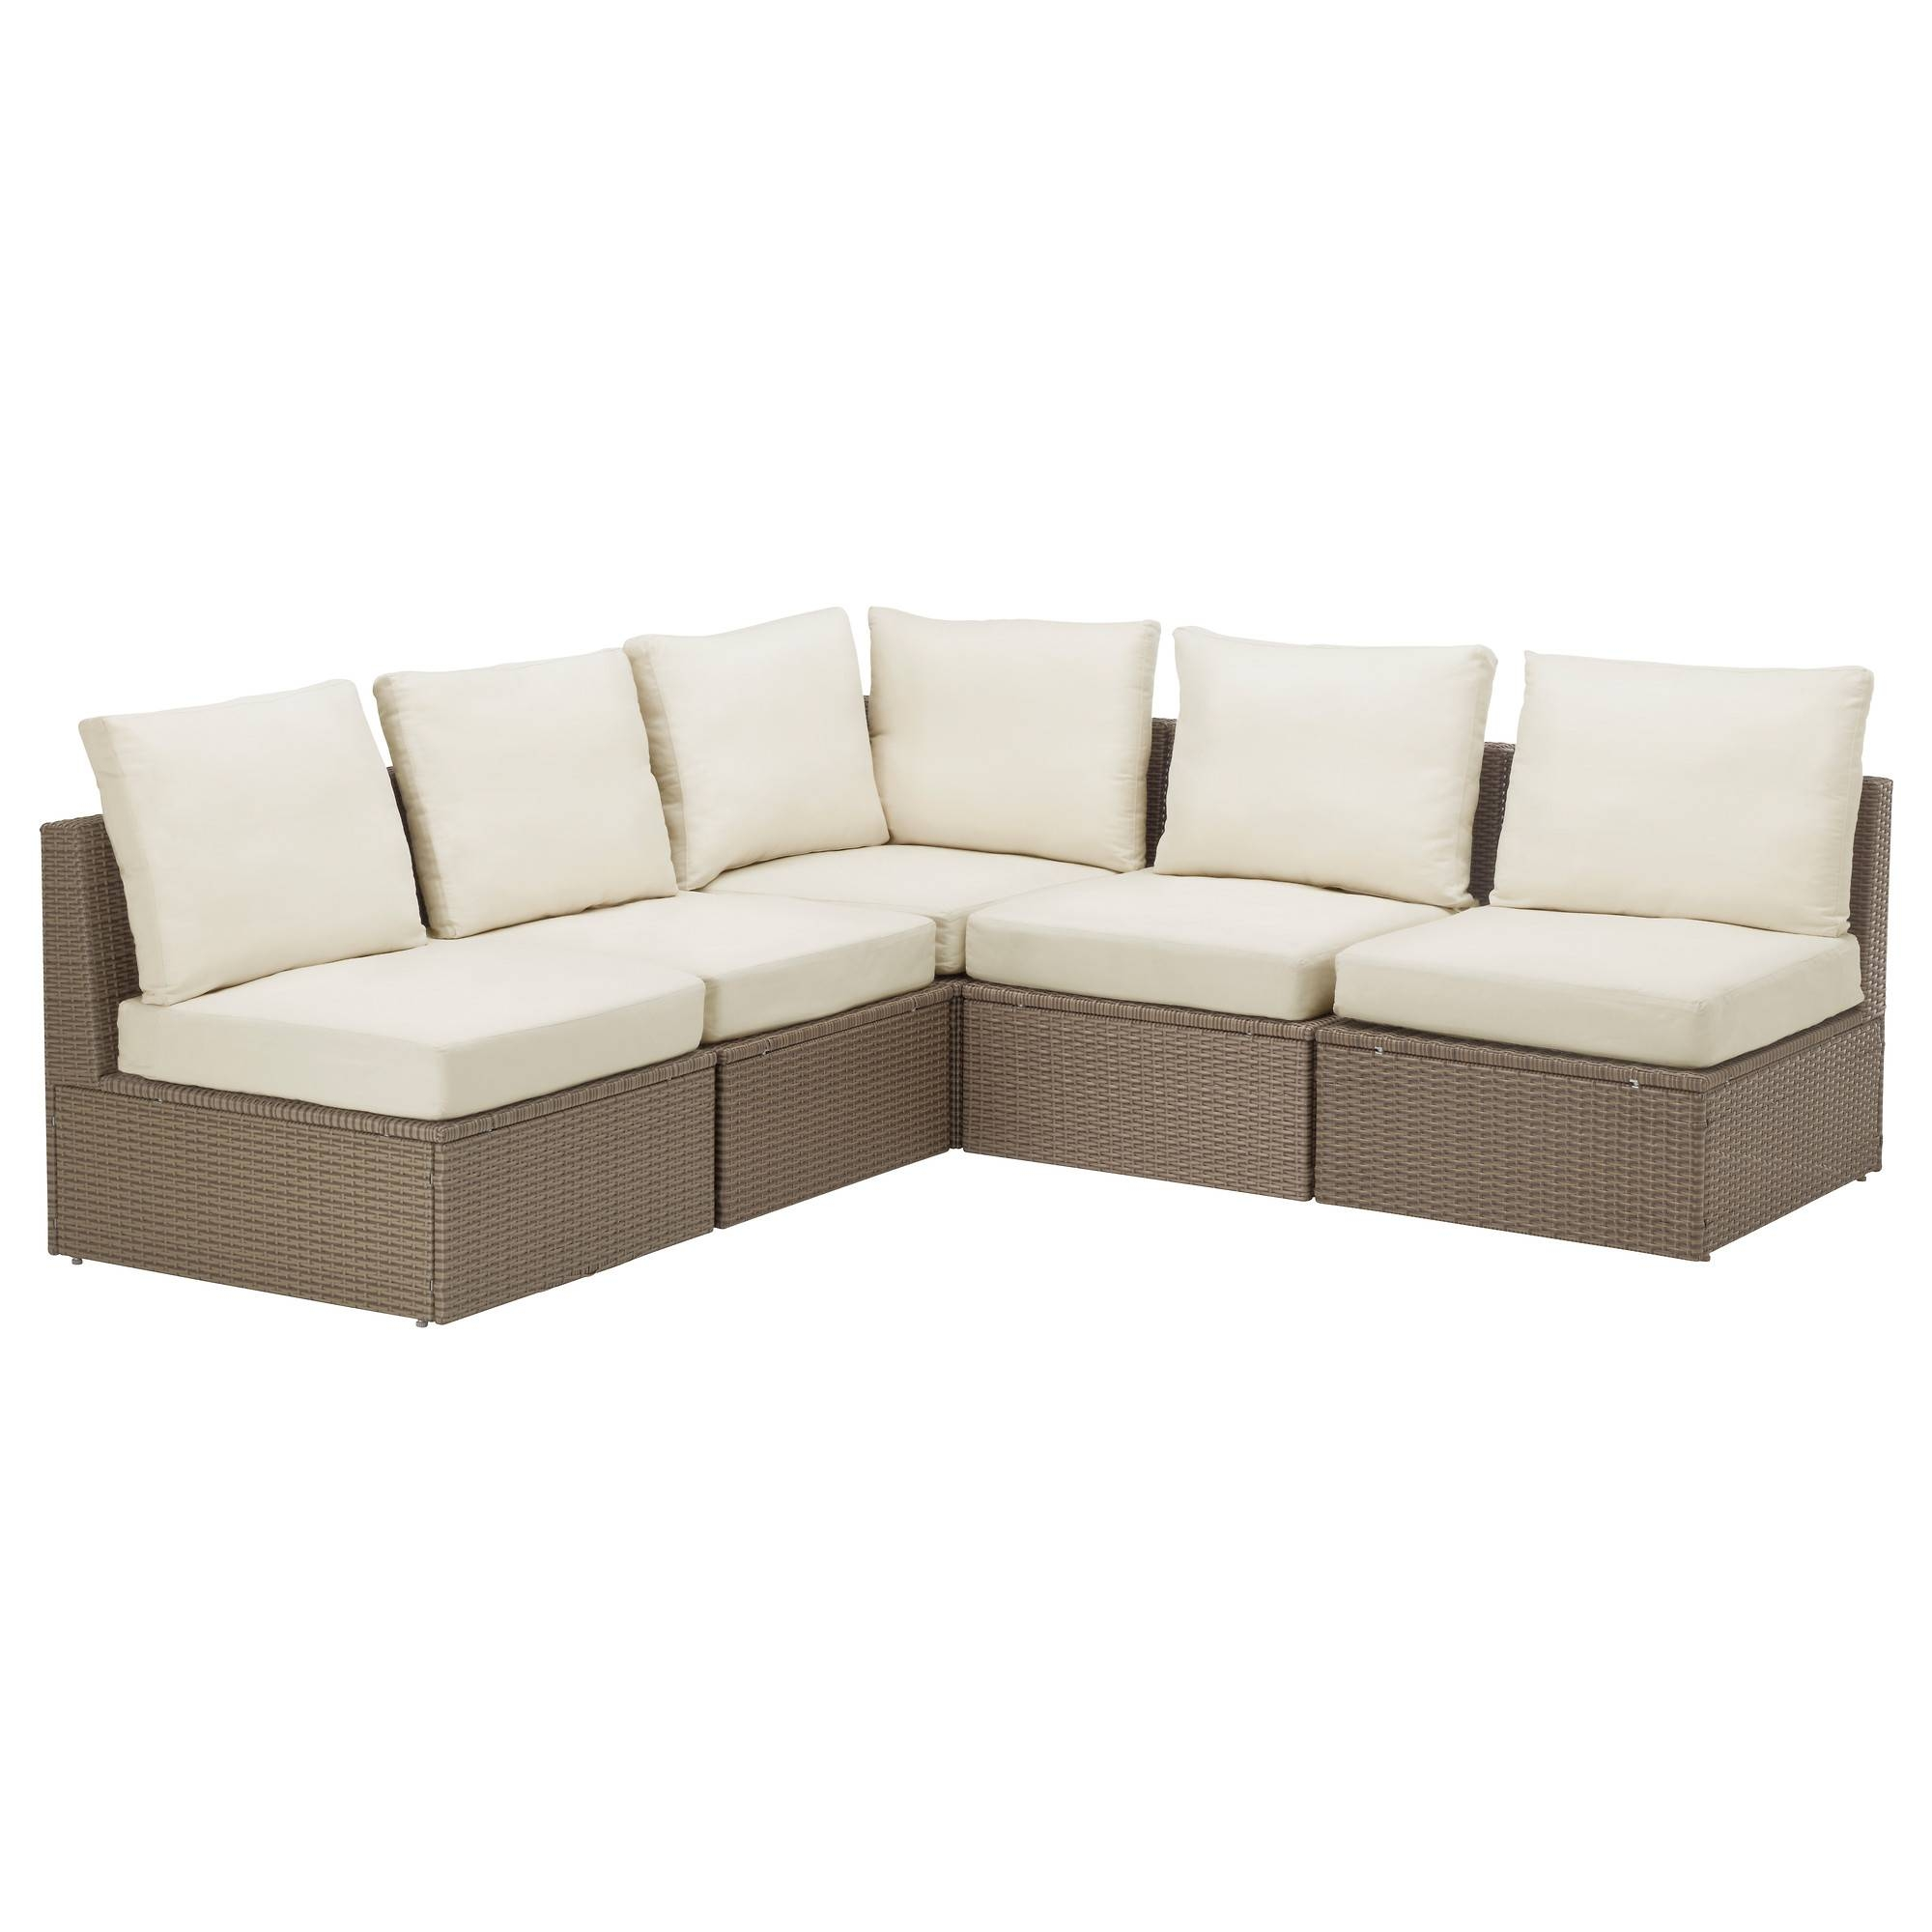 Arholma Corner Sofa 3+2, Outdoor Brown/beige 206/206X76X66 Cm - Ikea regarding Corner Sofa Chairs (Image 1 of 30)